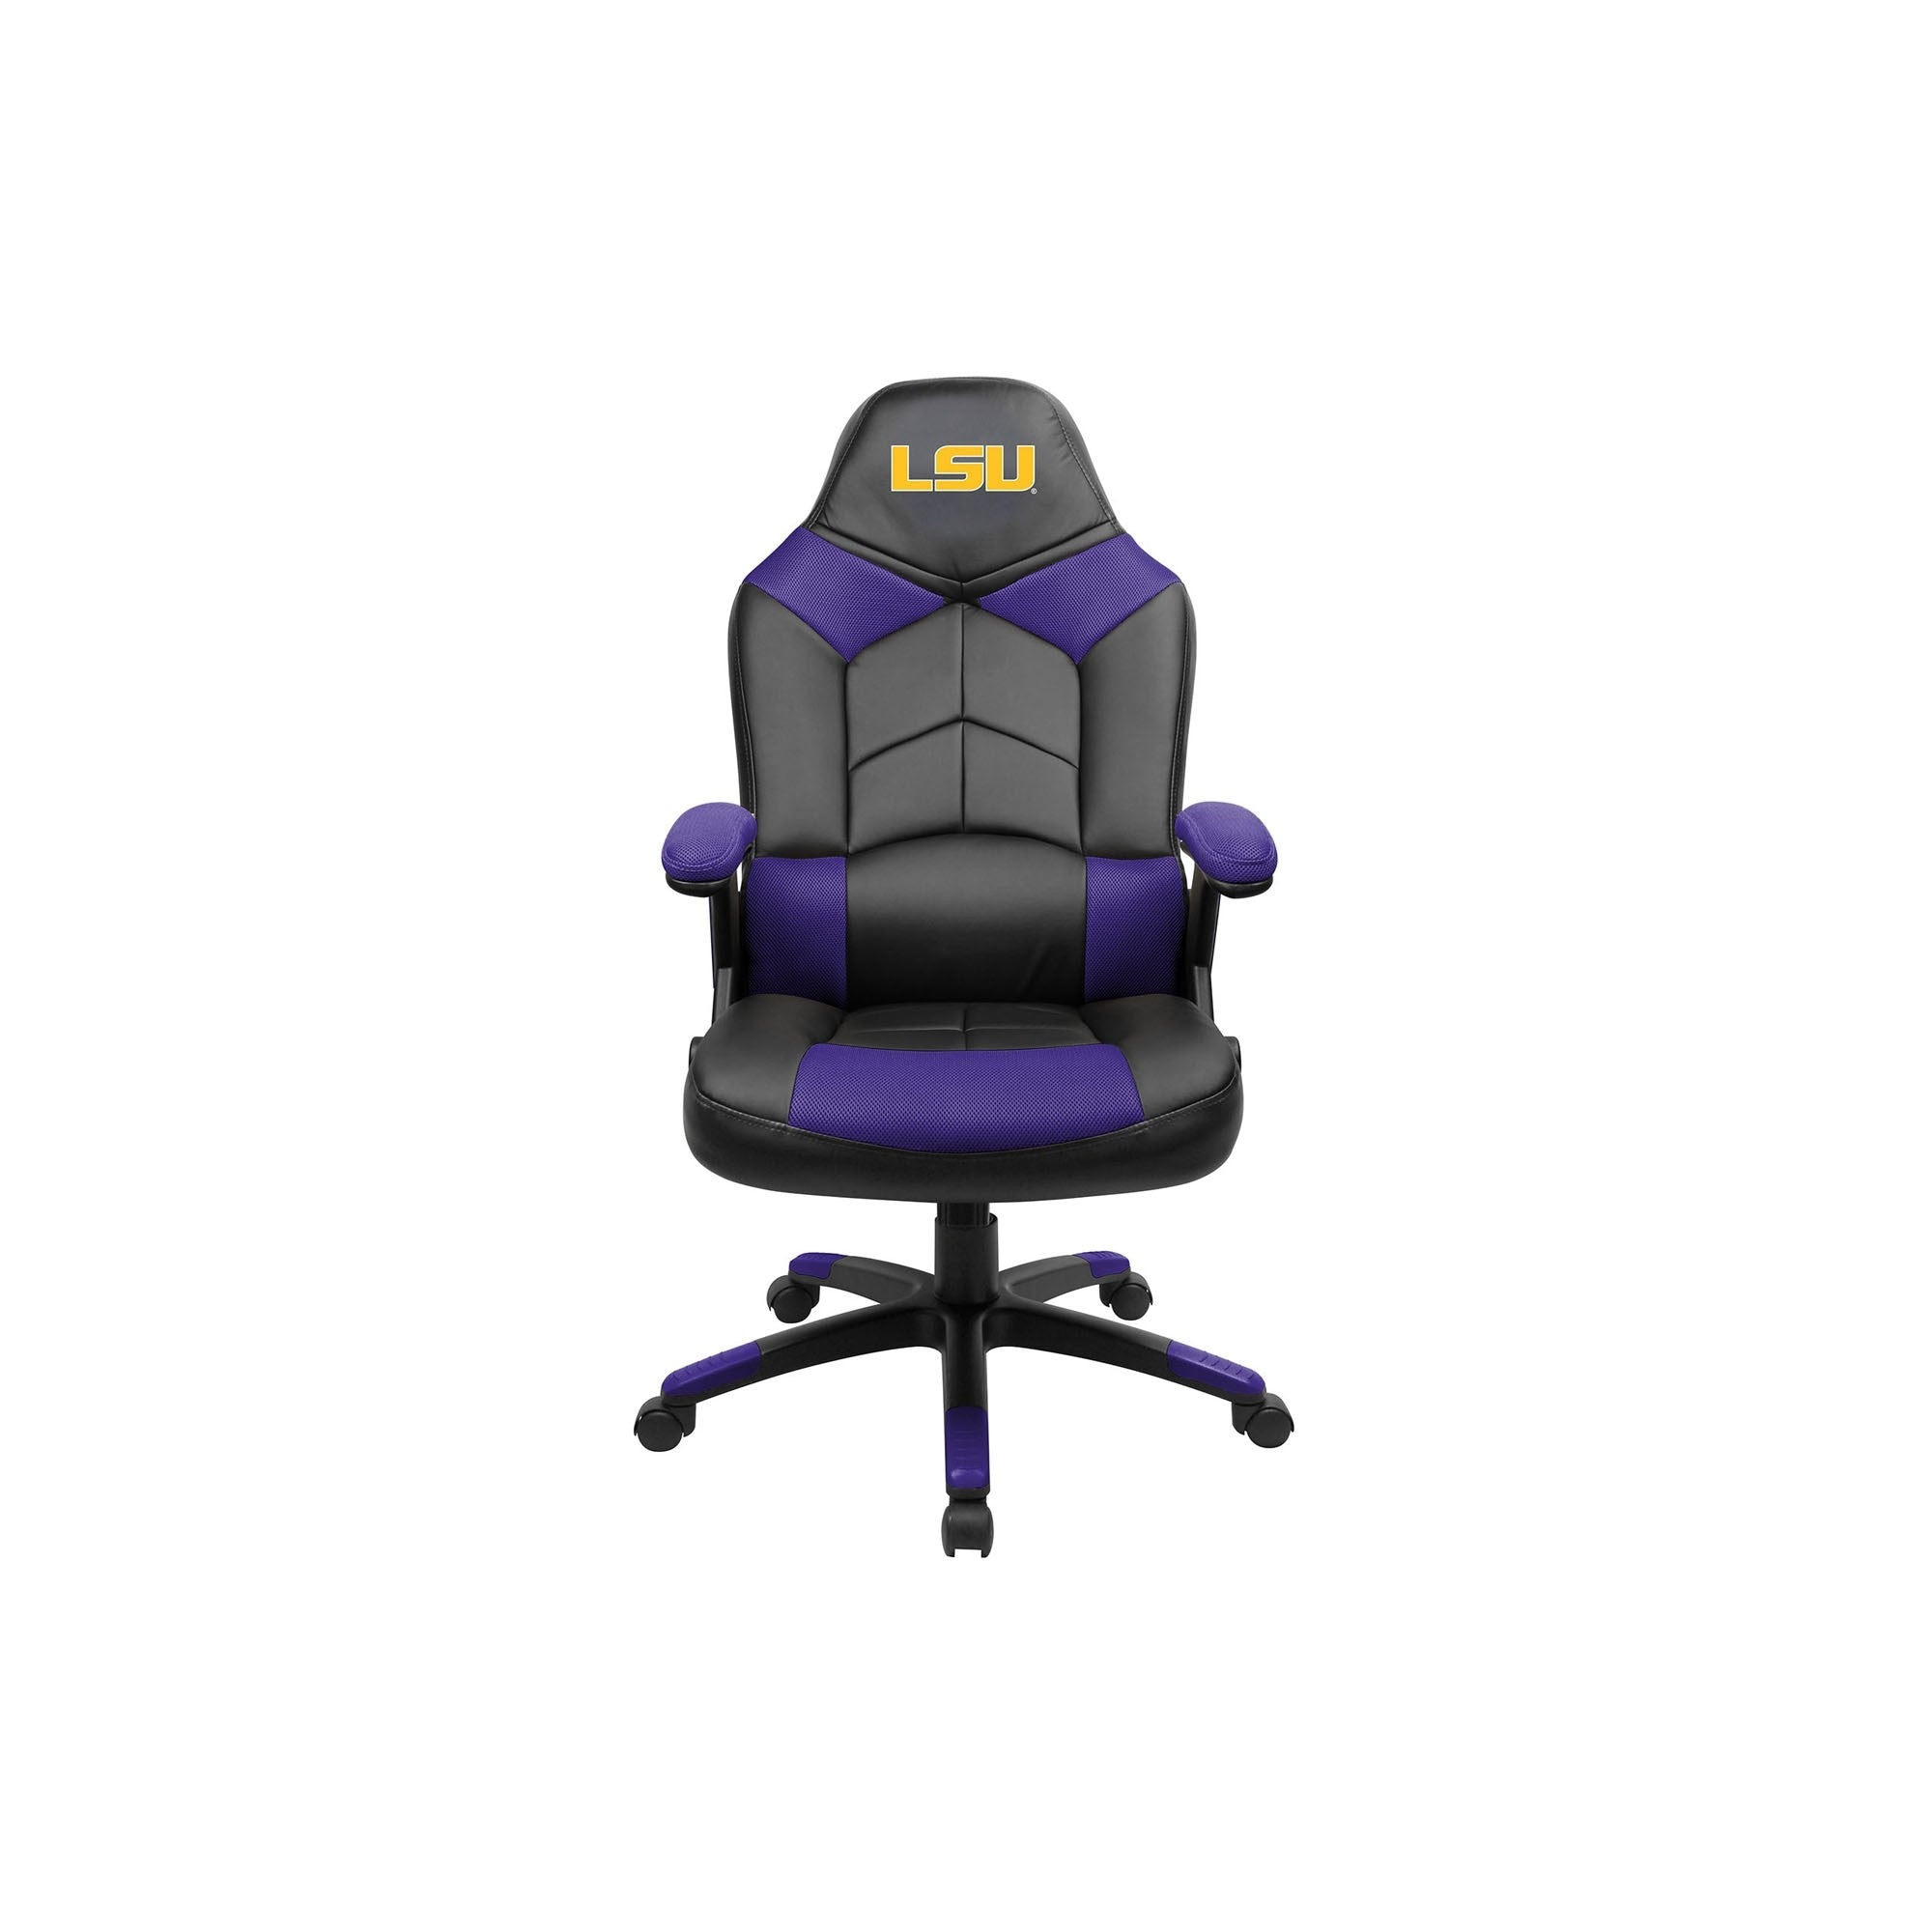 Louisiana State University Oversized Licensed Gaming Chair   Racer Gaming  Chairs